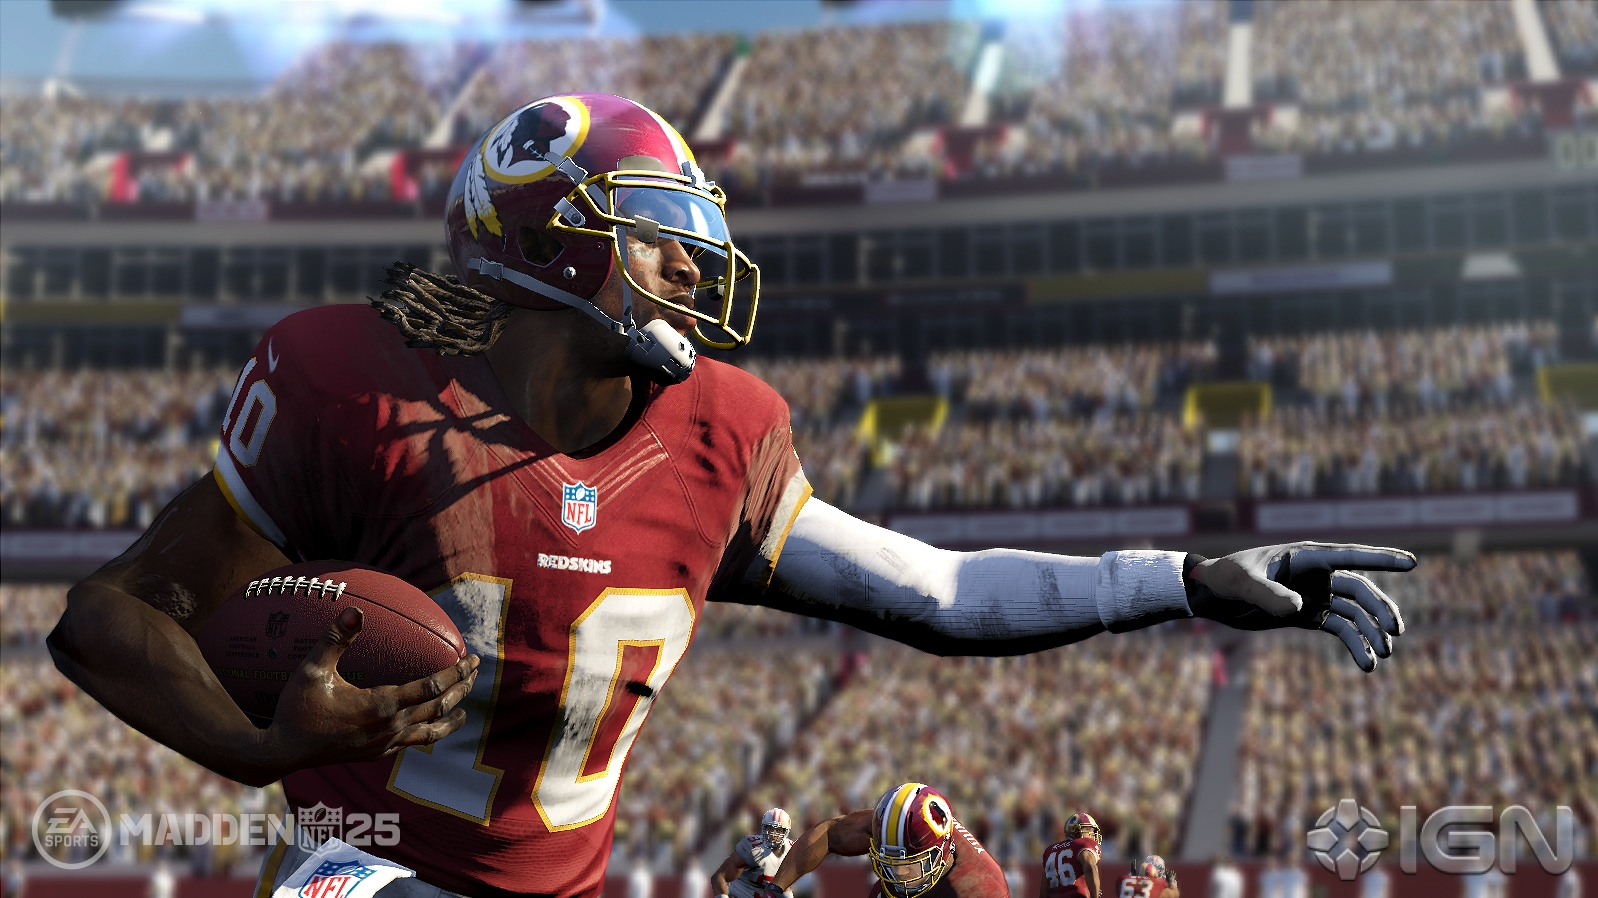 Madden NFL 25 WallpaperXbox One Madden 25 Graphics